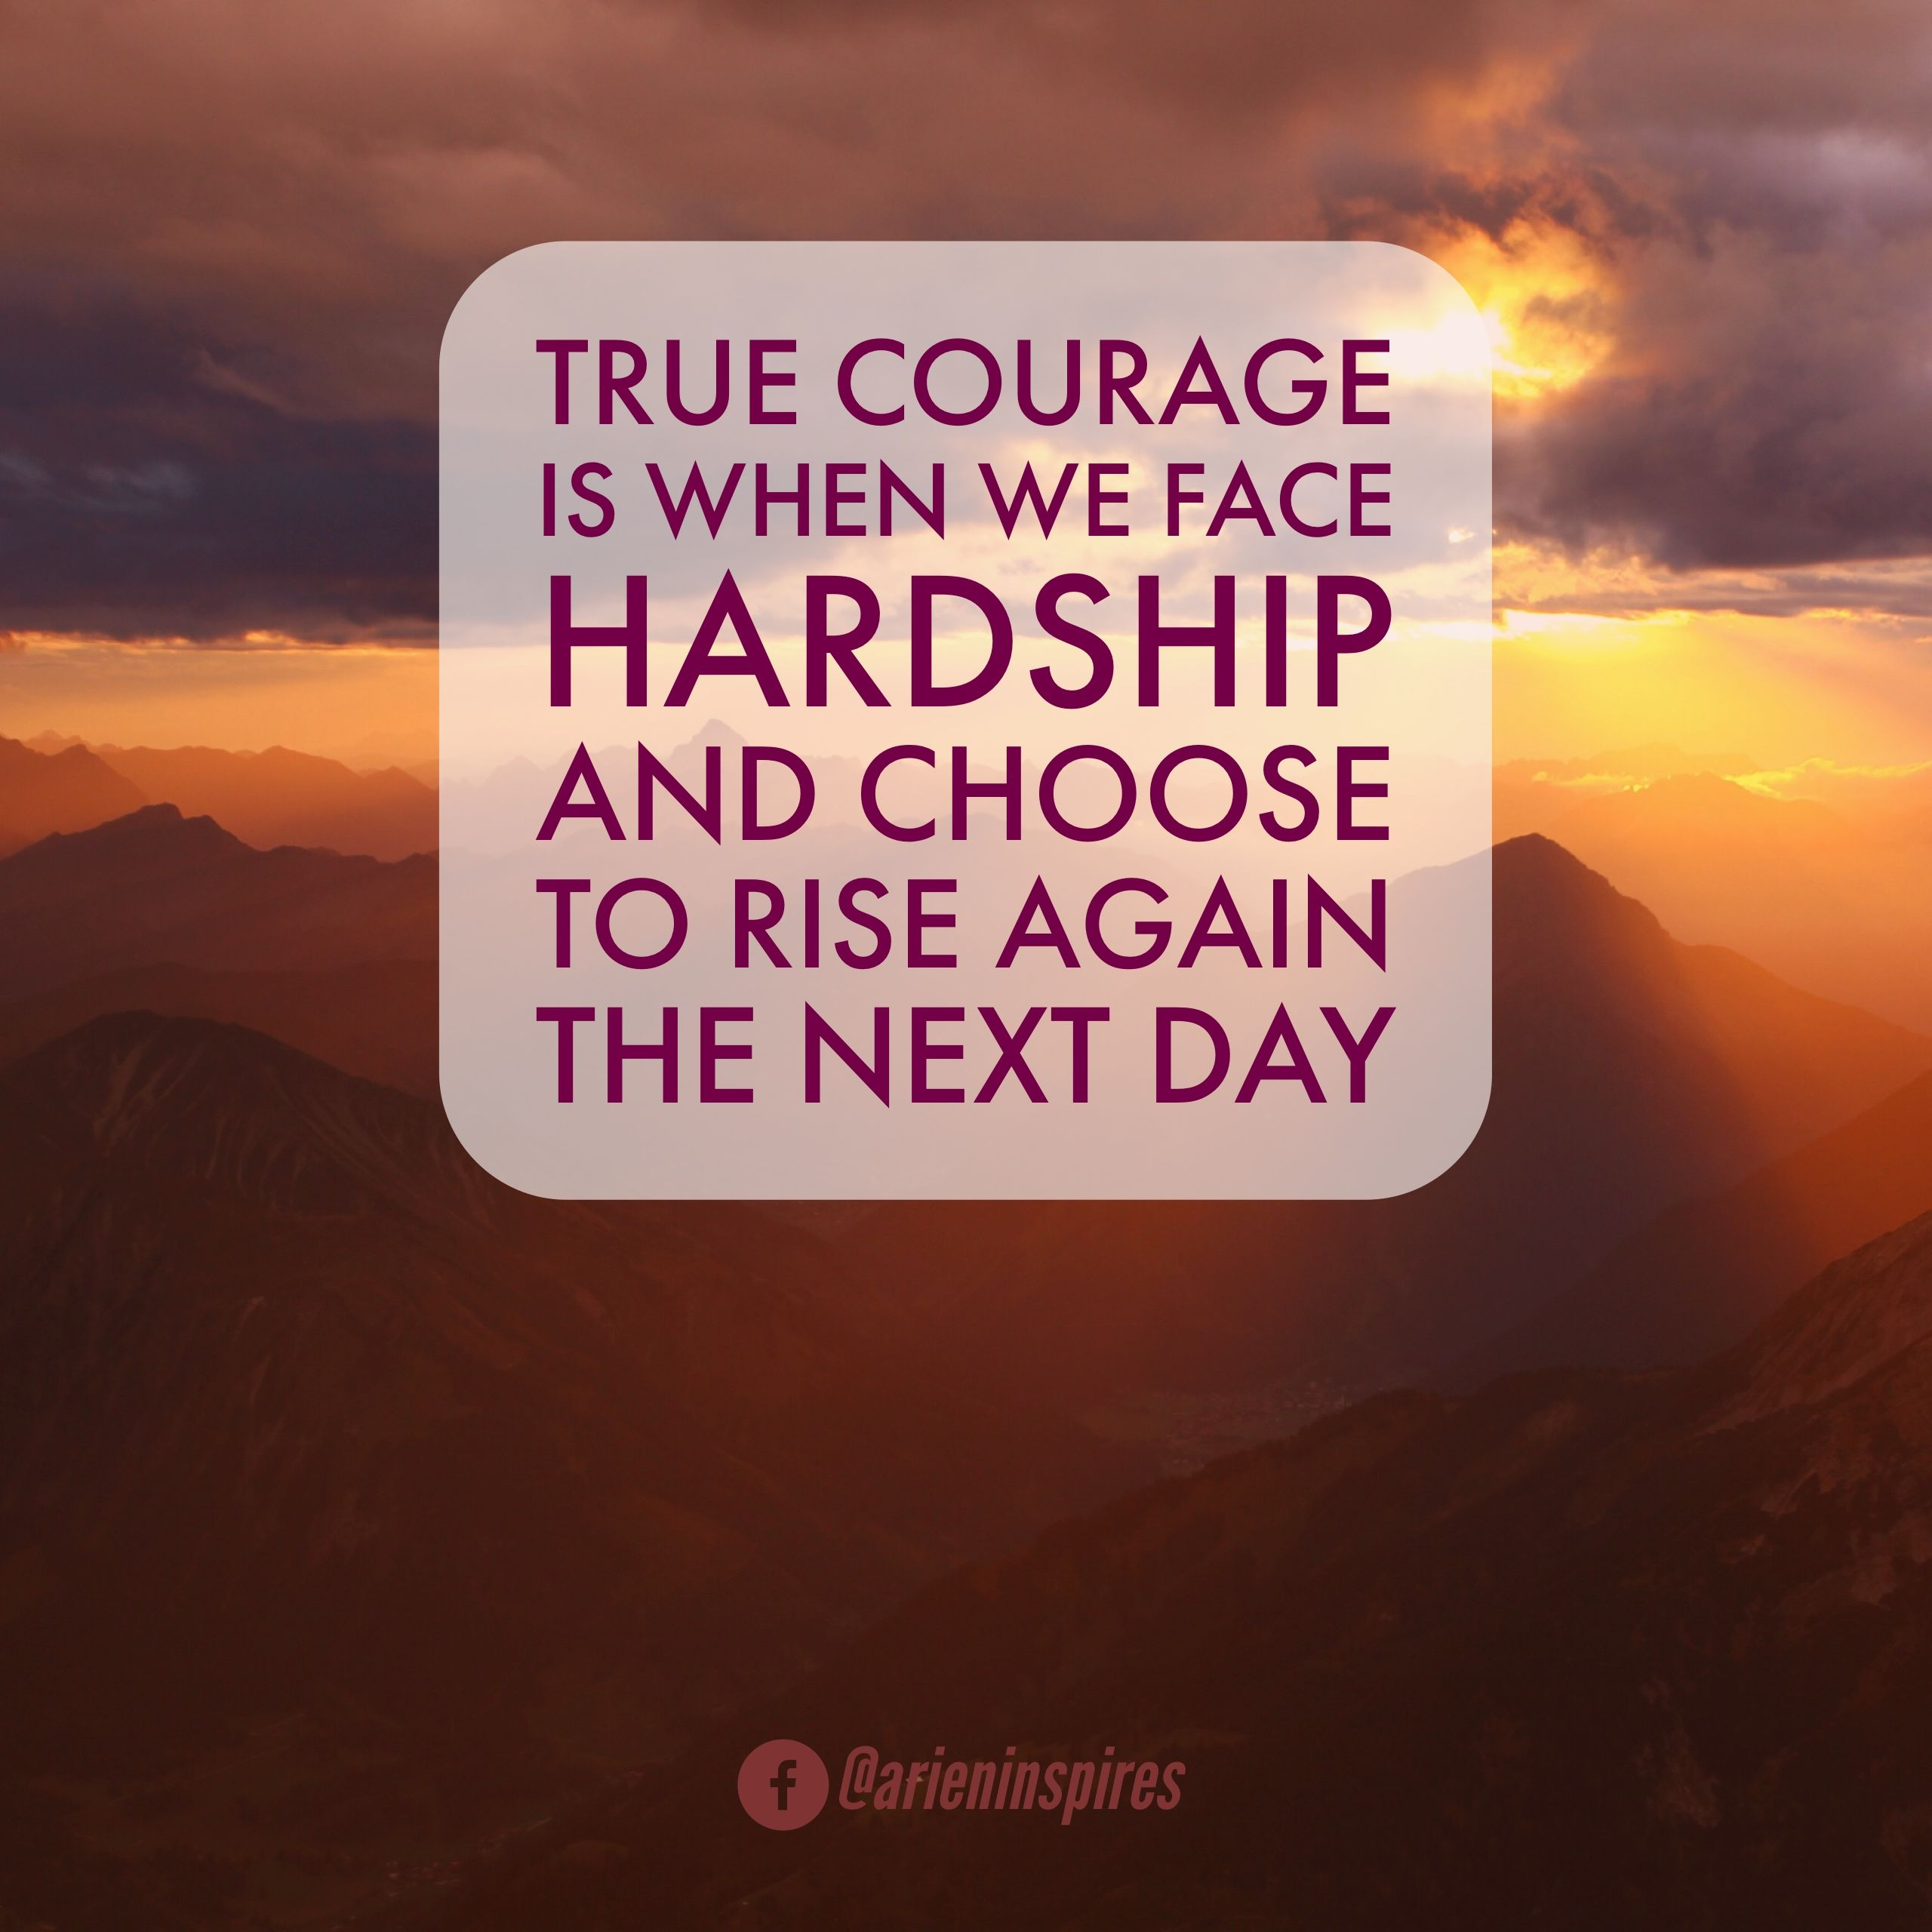 If you have faced hardship, abuse, mental illness, or pain--you demonstrate courage by waking up every day.